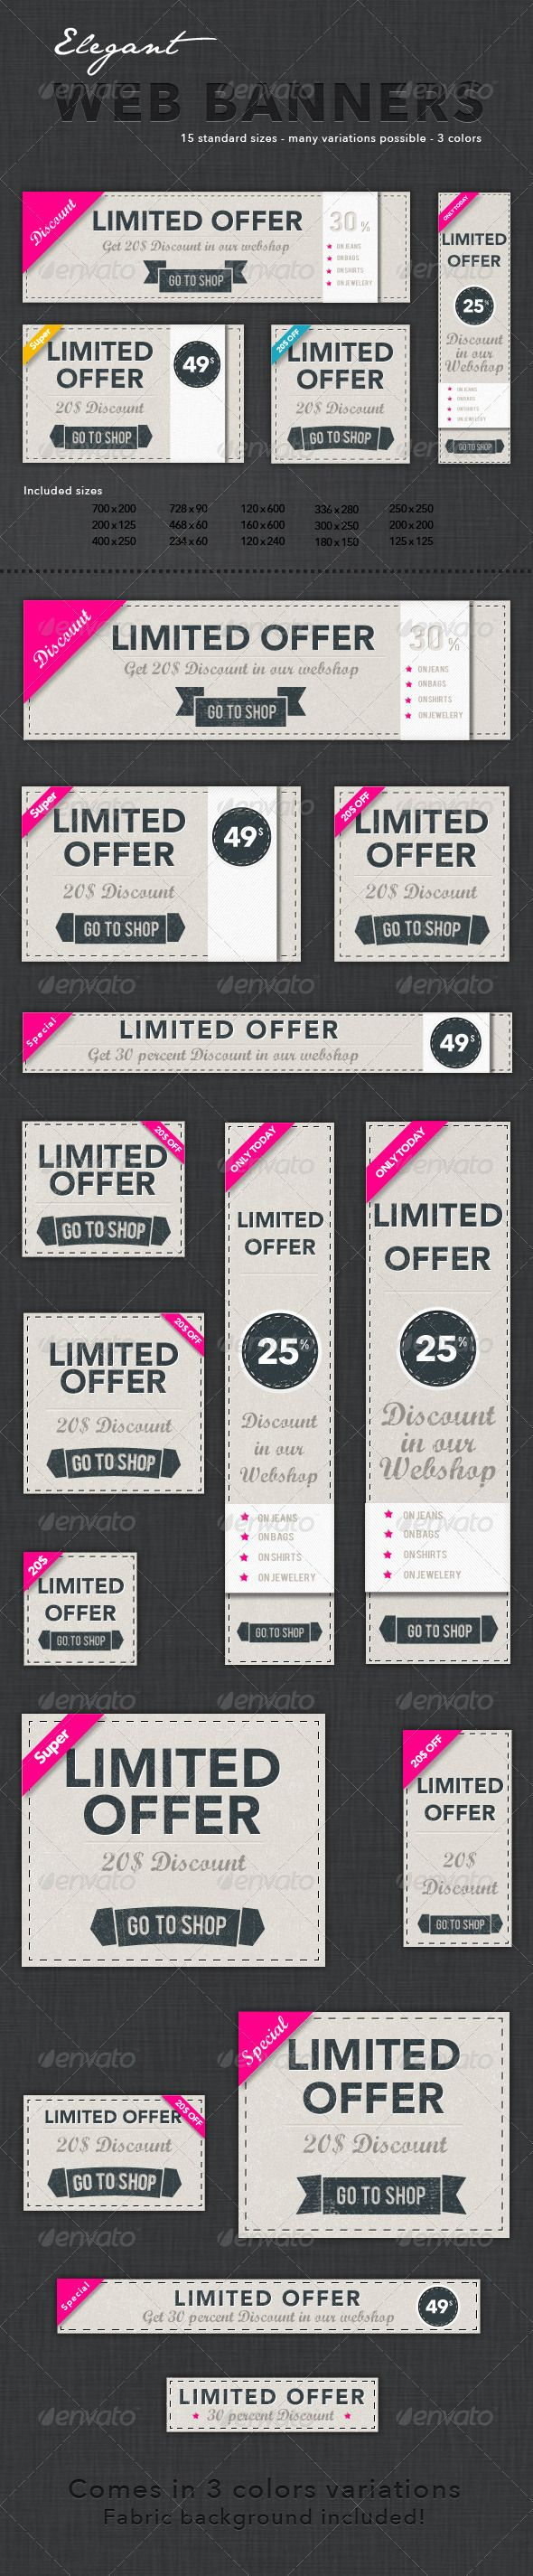 Elegant Web Banners — Photoshop PSD #retro #pink • Available here → https://graphicriver.net/item/elegant-web-banners/3449525?ref=pxcr